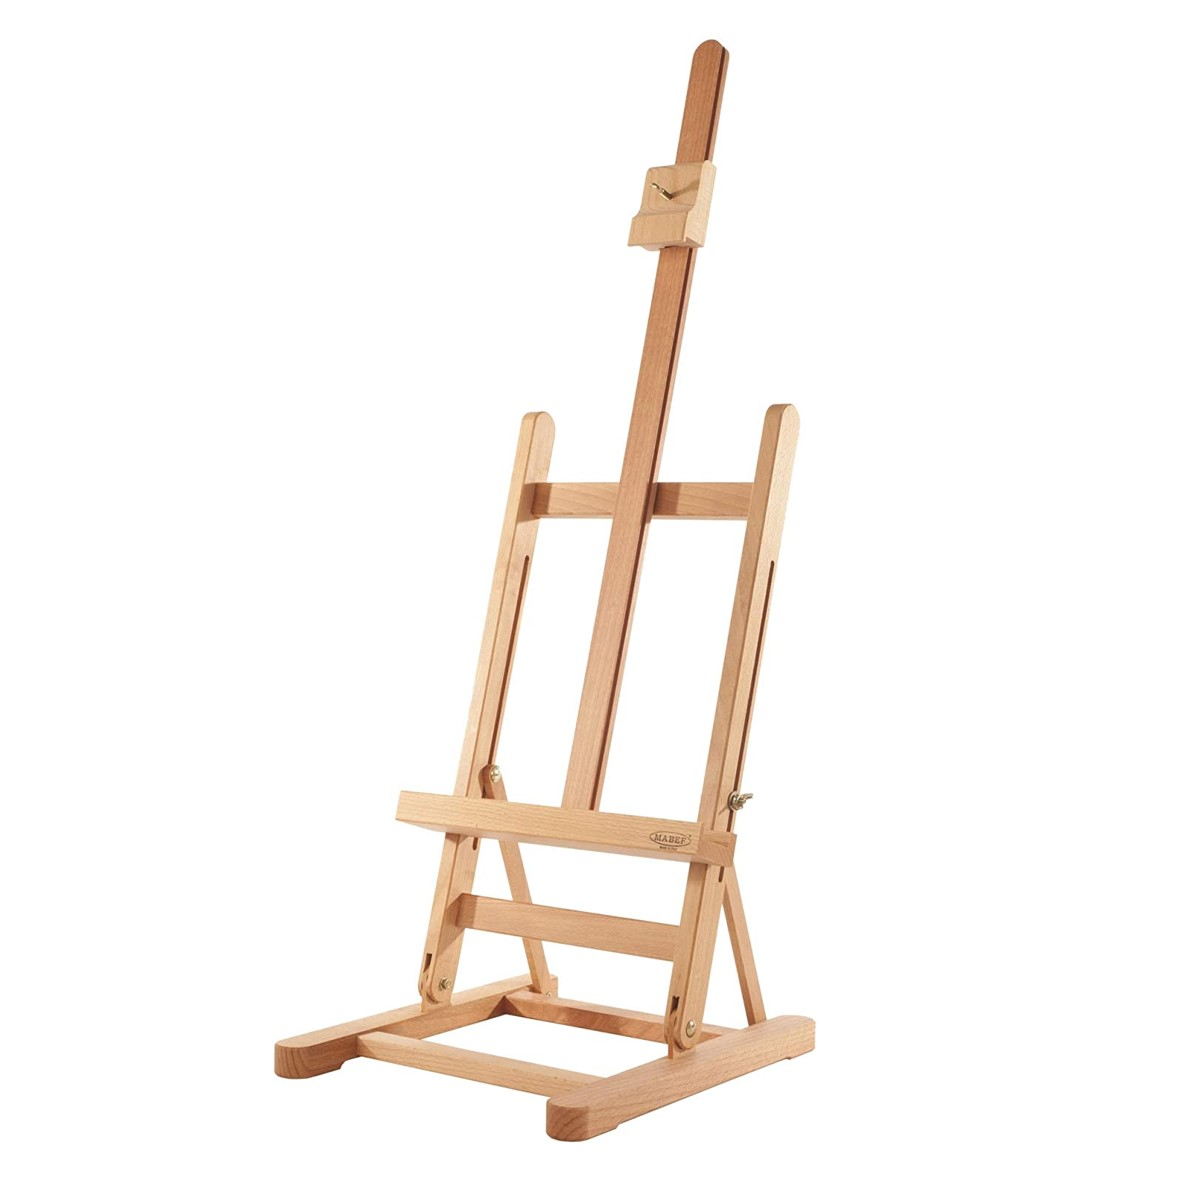 Mabef Table Easel - M14